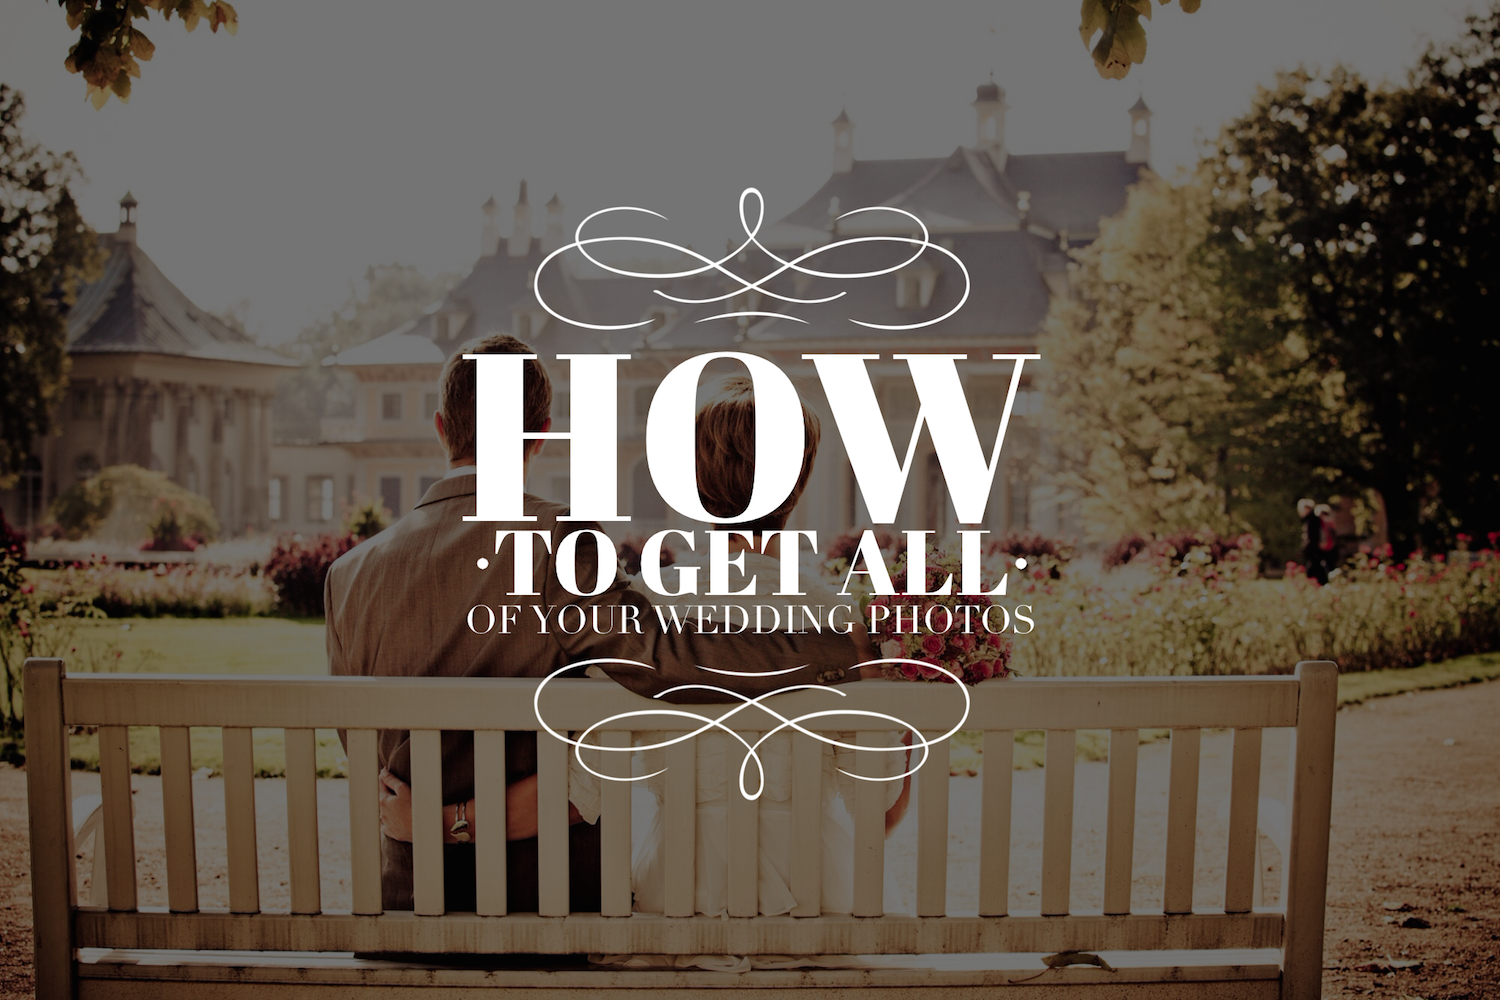 How to get ALL of your wedding photos, by Dan Schenker